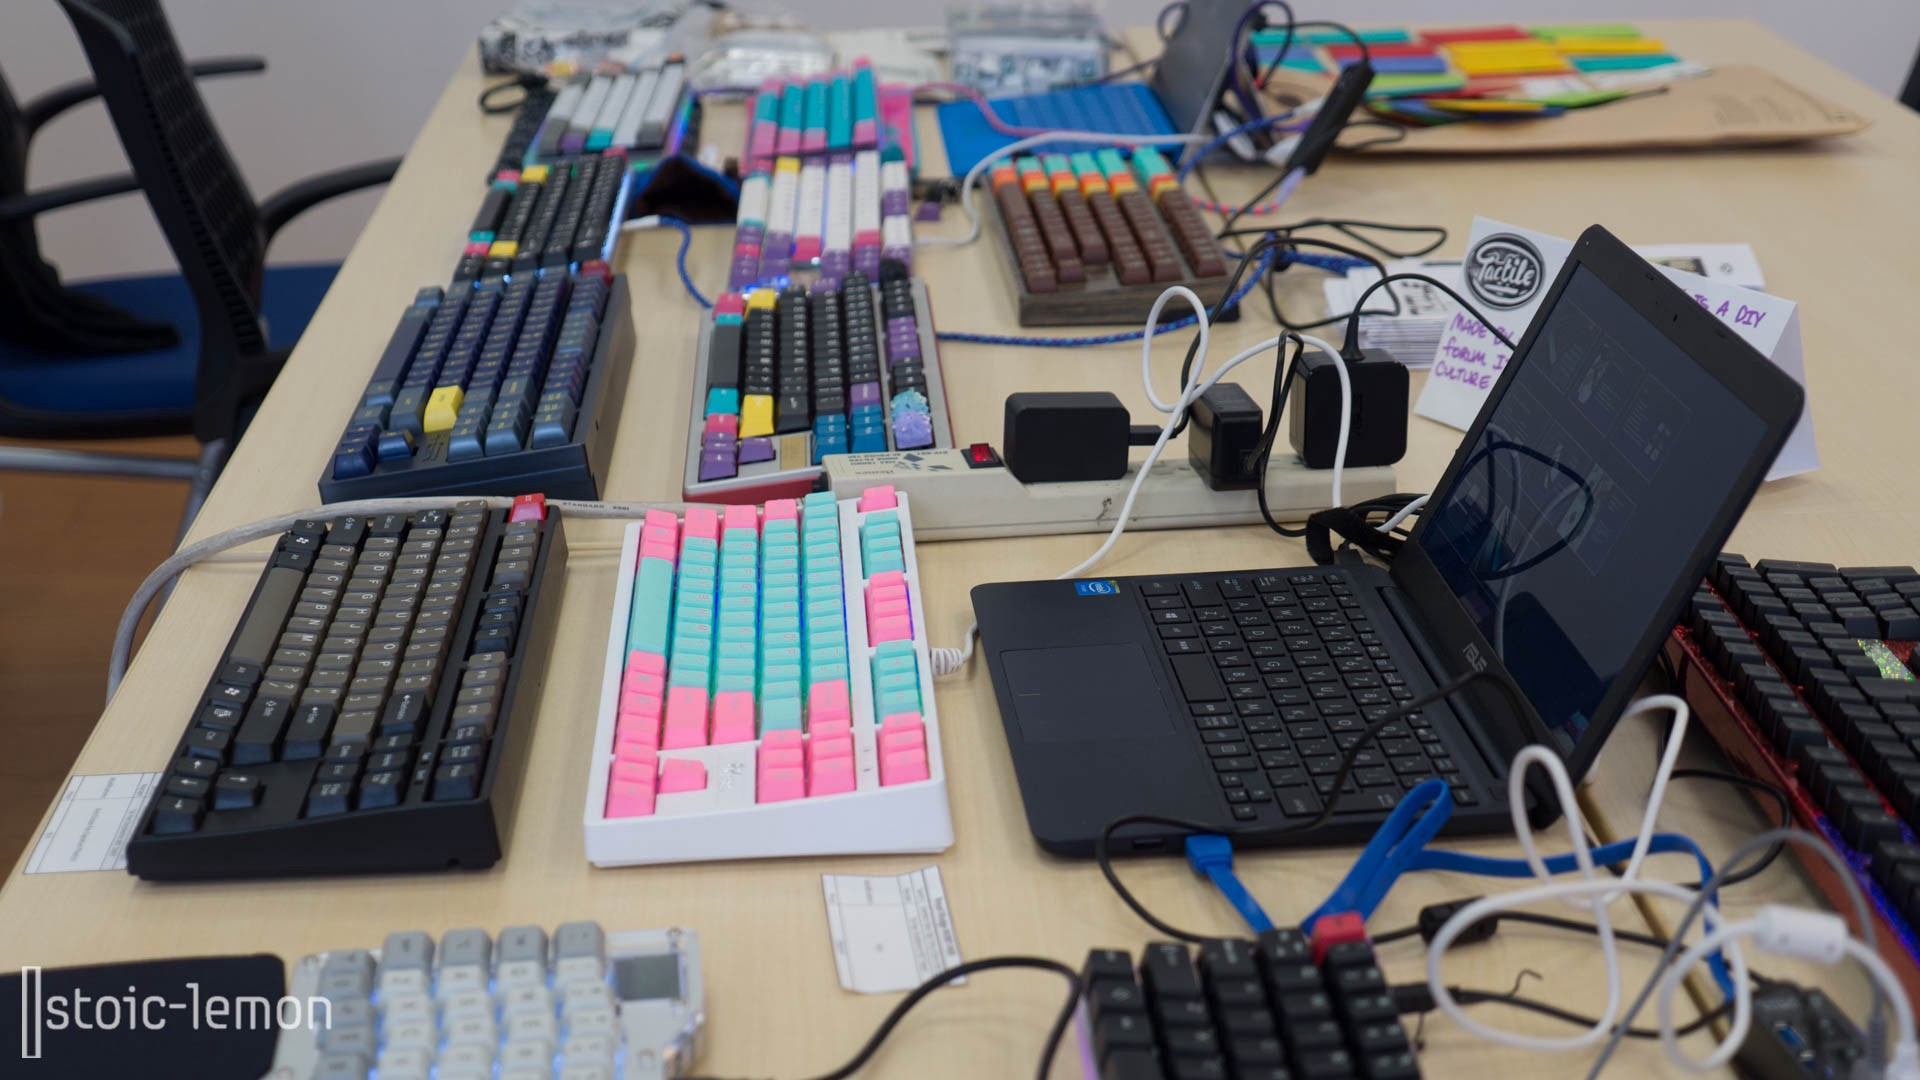 Tokyo Mechanical Keyboard Meetup: how it happened and what